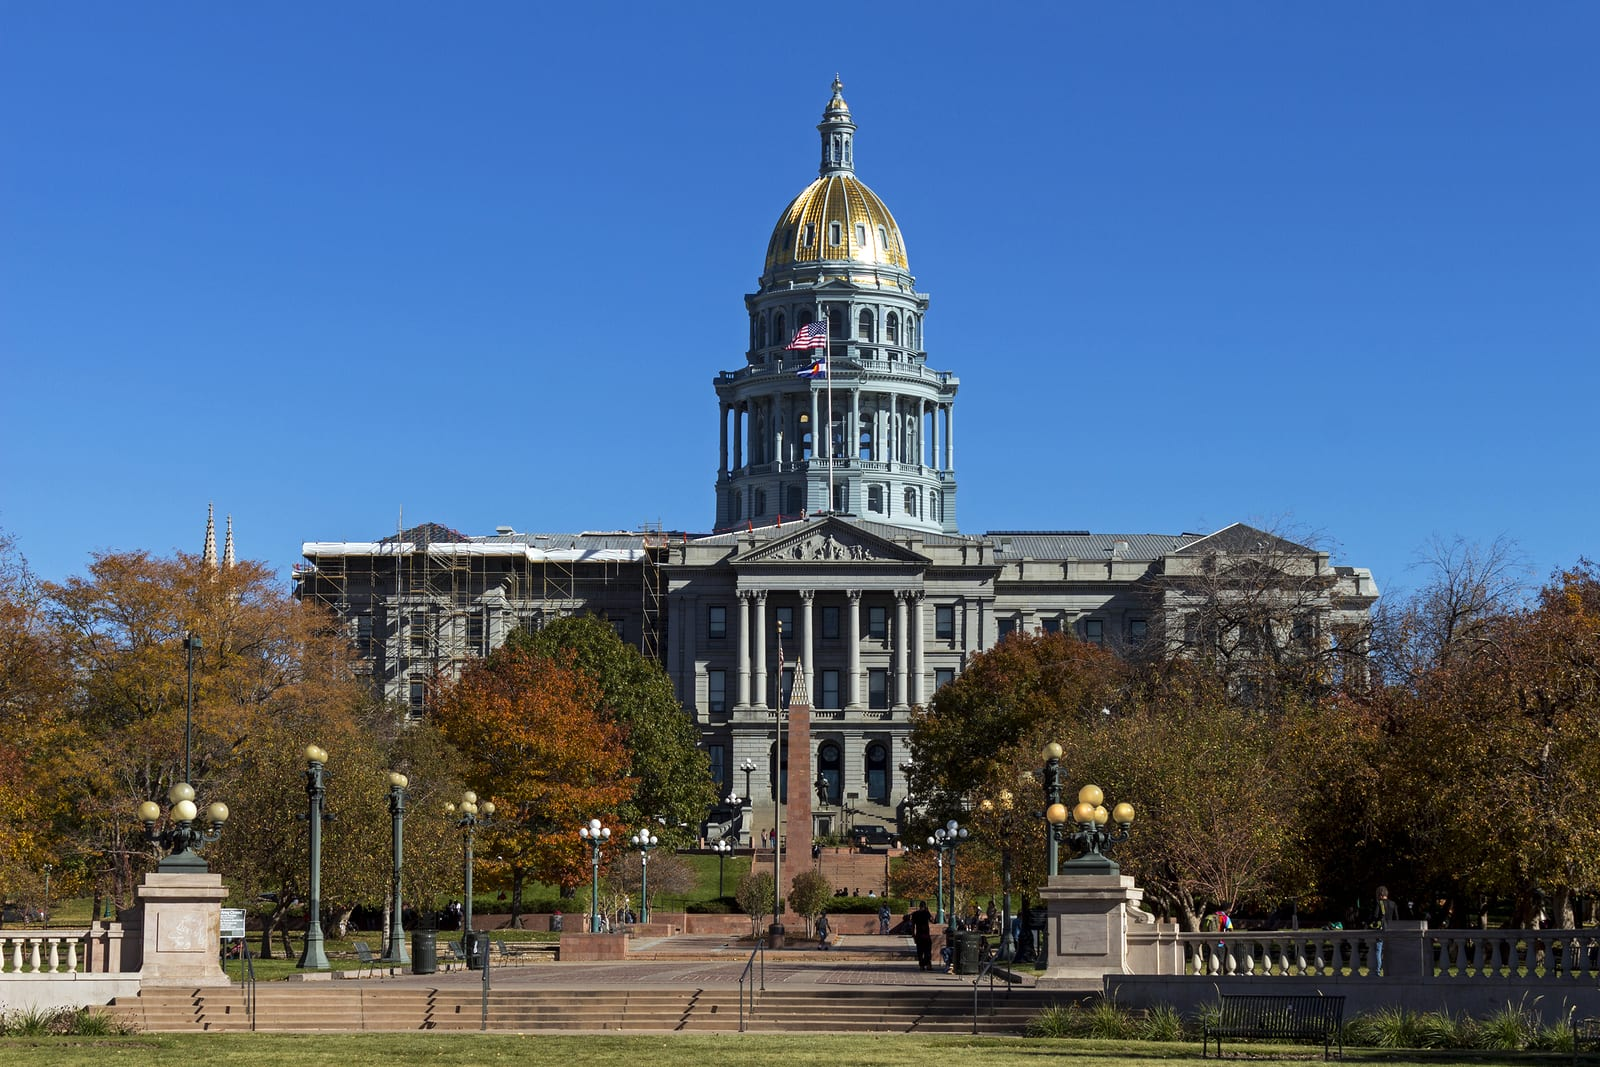 Colorado News: Safe2Tell continues to see record number of tip submissions in September